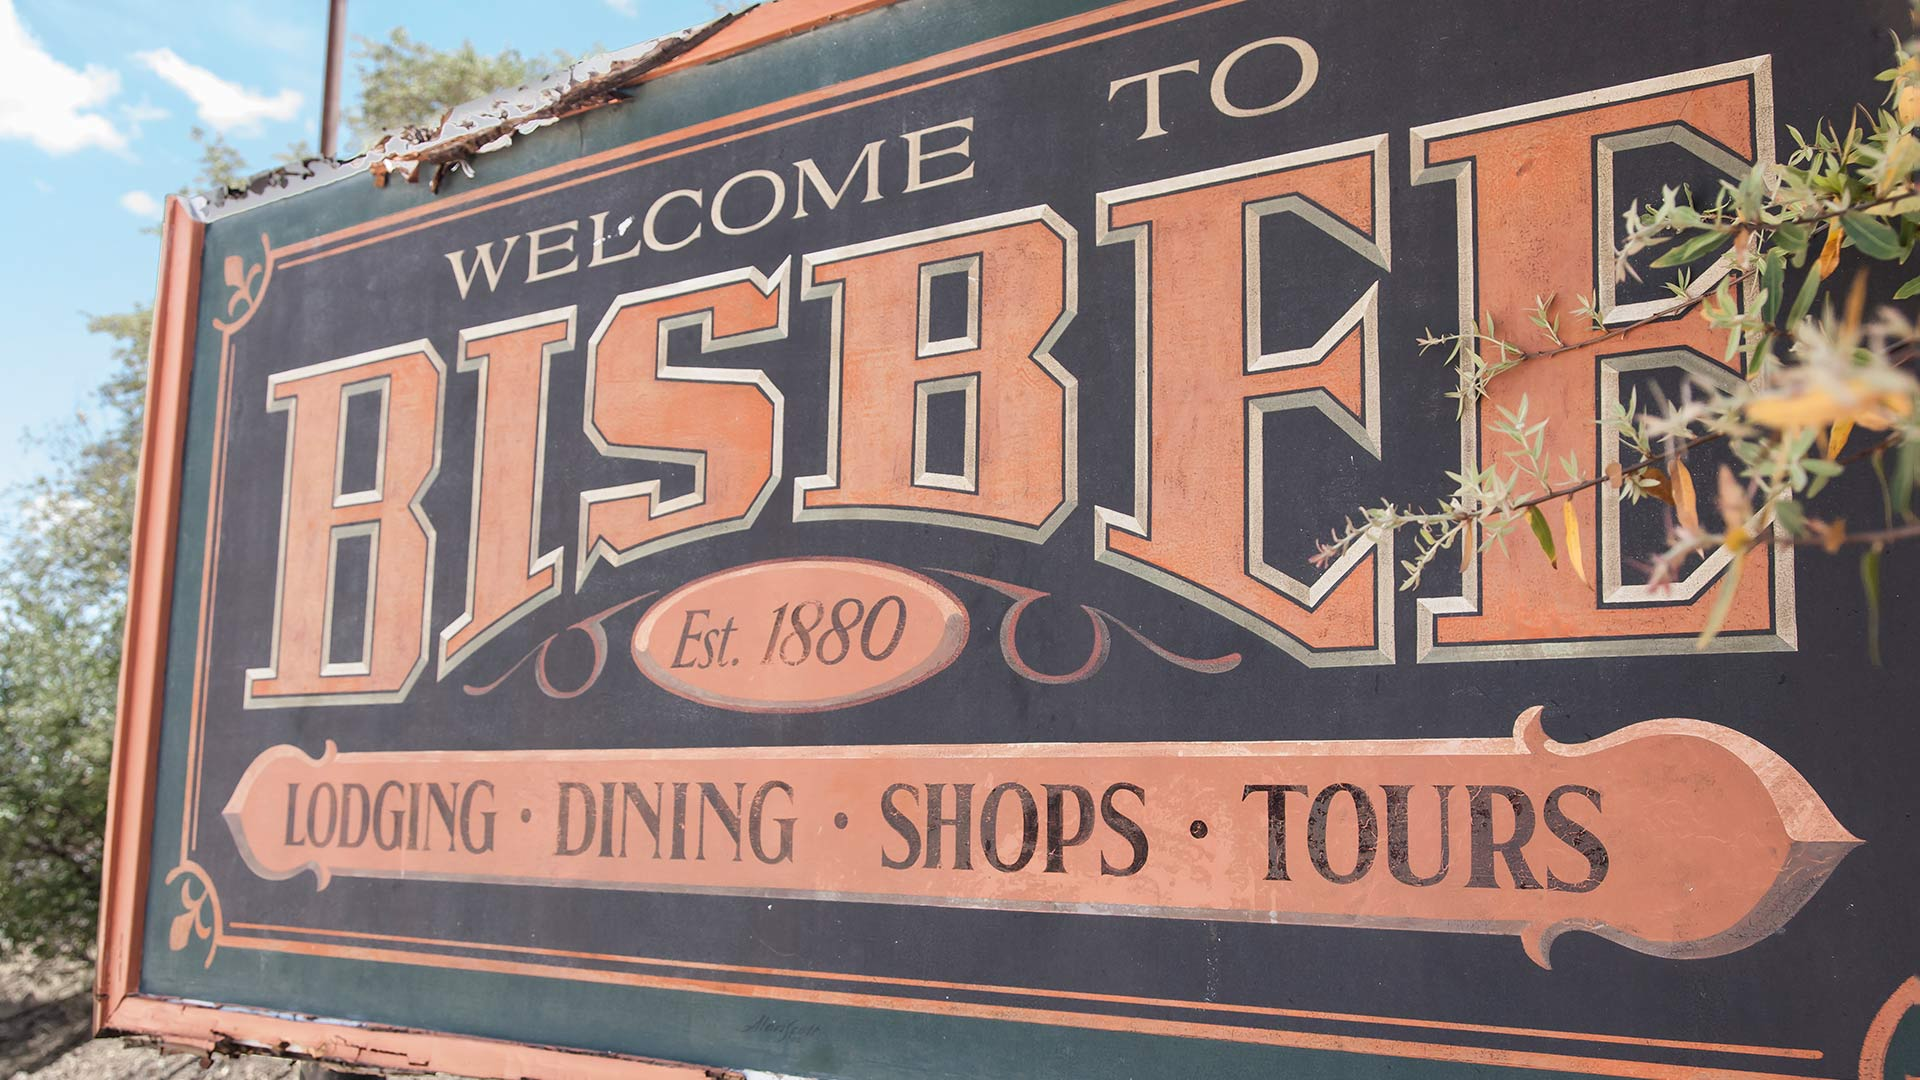 A sign welcoming visitors to Bisbee, Arizona.